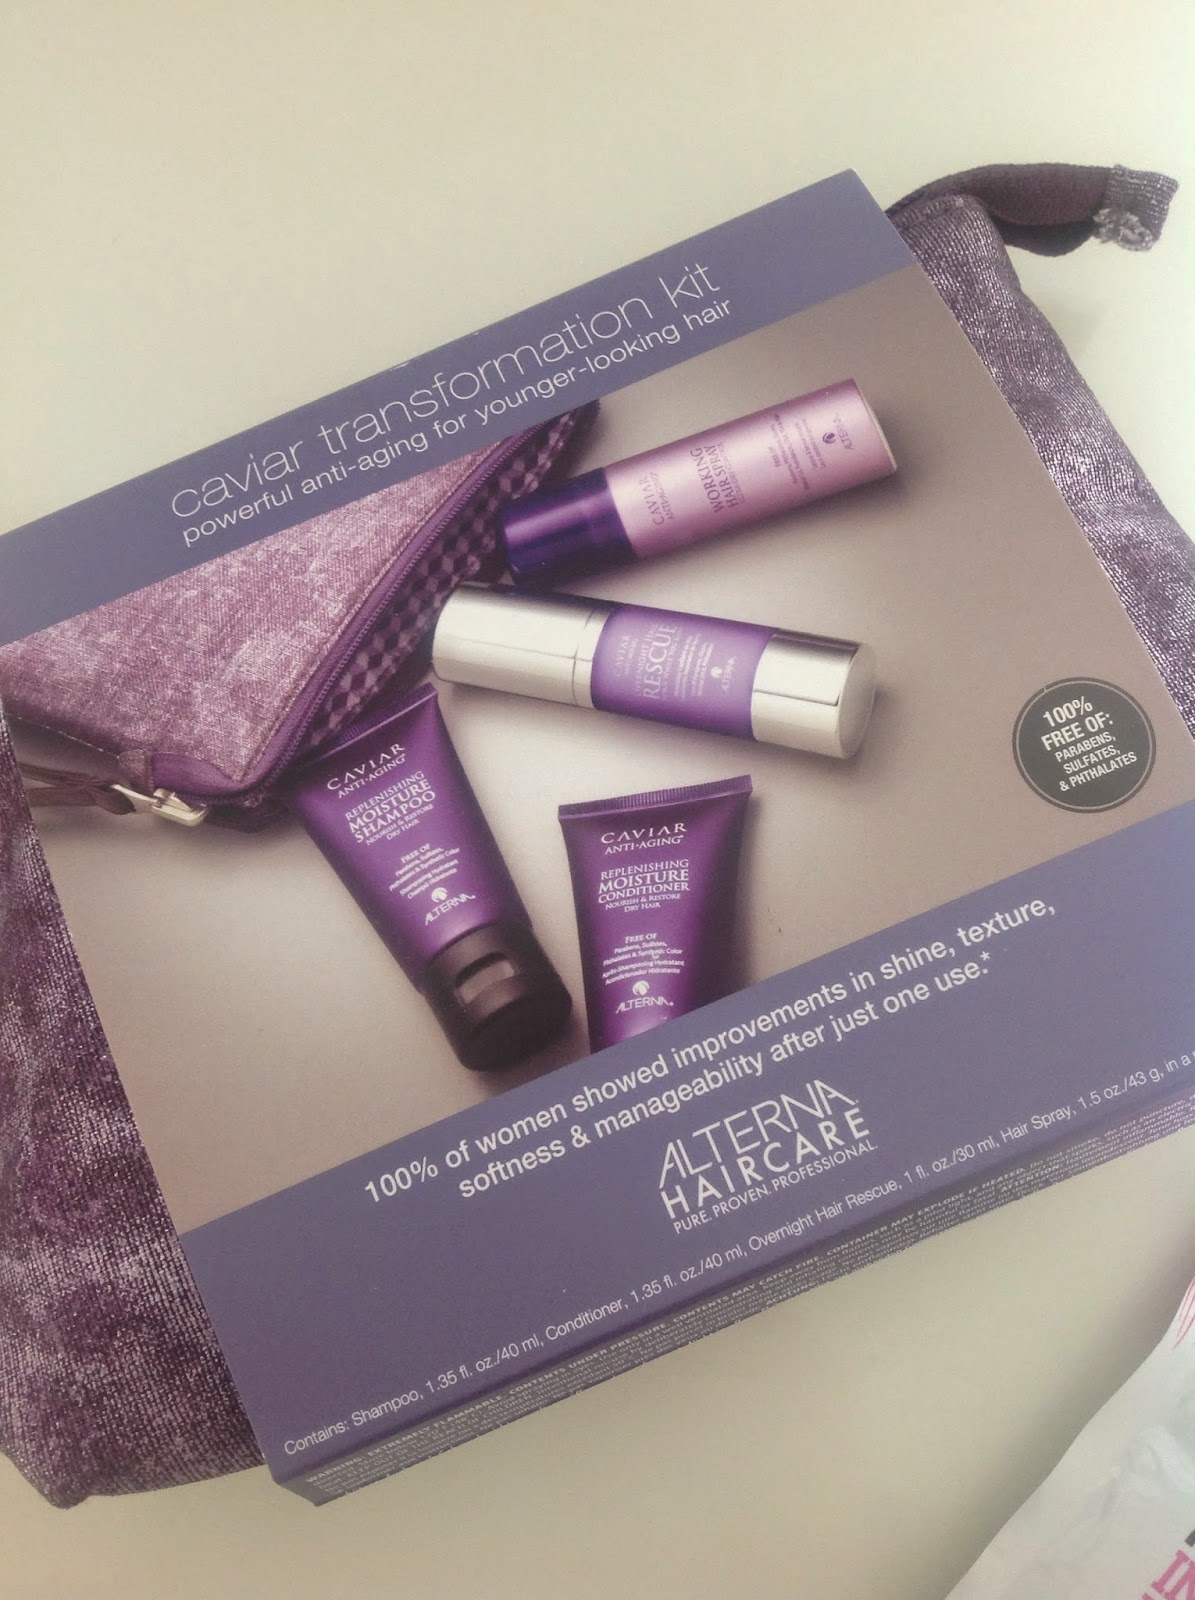 Alterna Caviar Transformation Kit